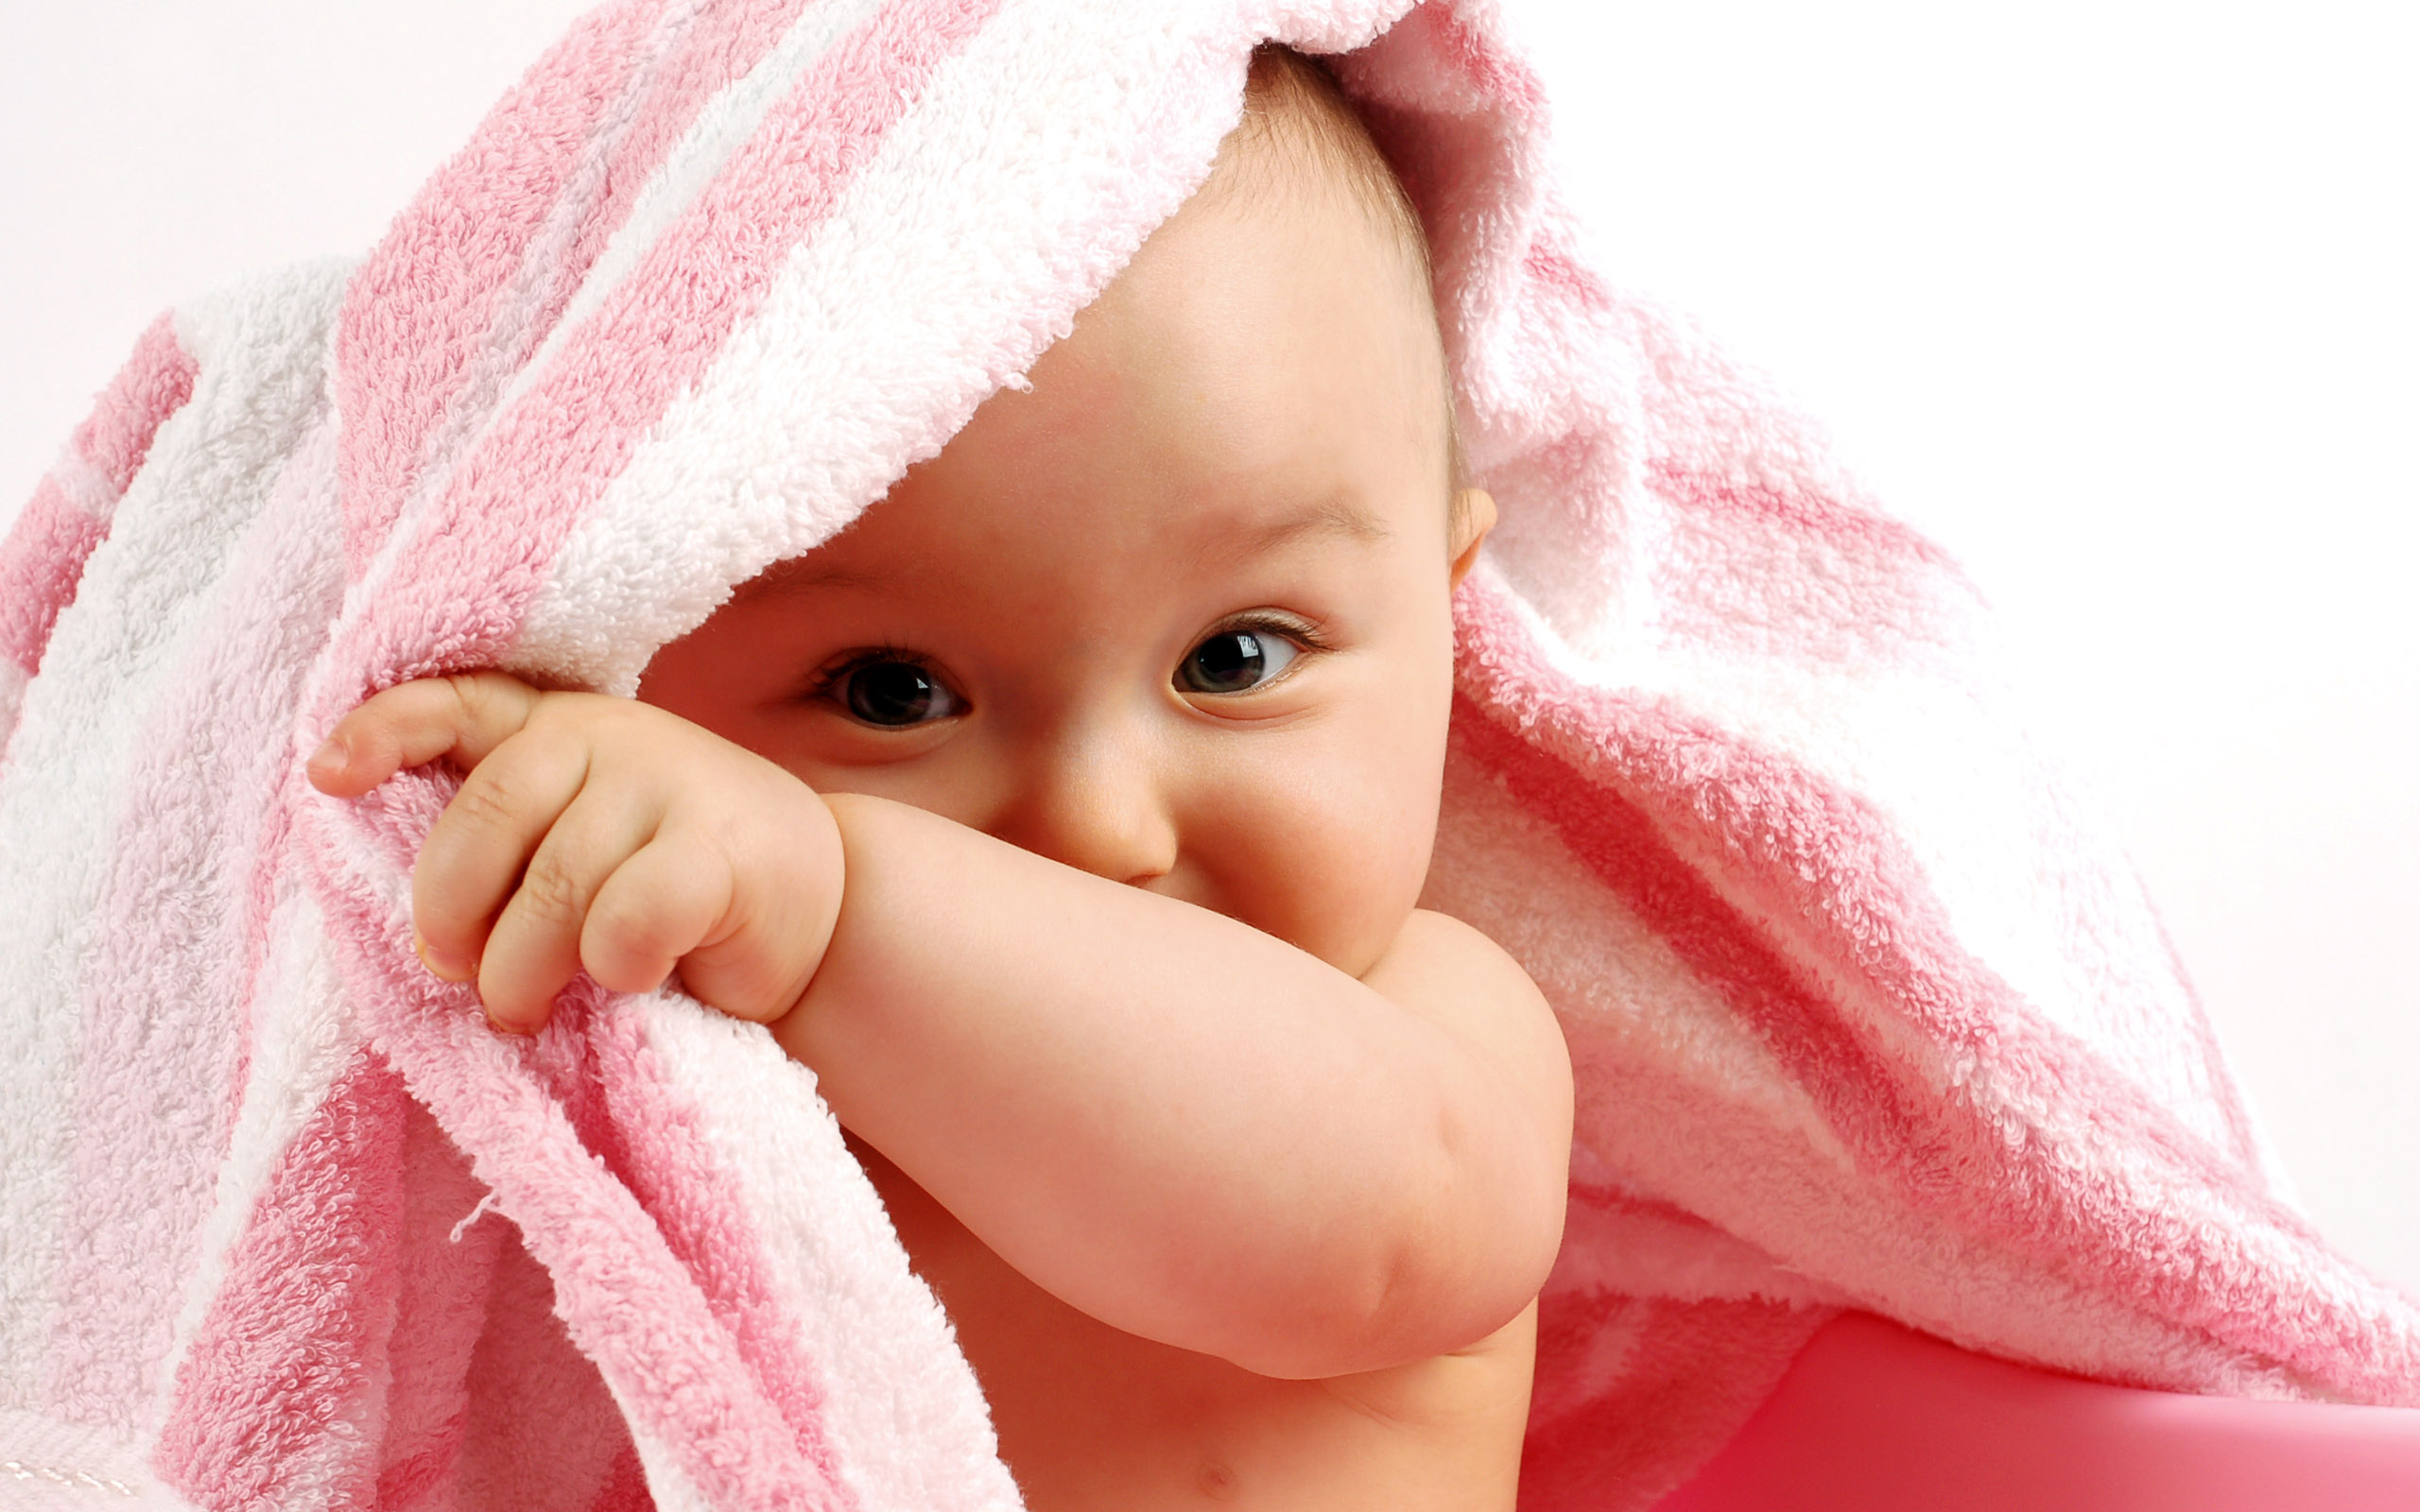 Cute Baby Boy 2 Wallpapers HD Wallpapers 2560x1600